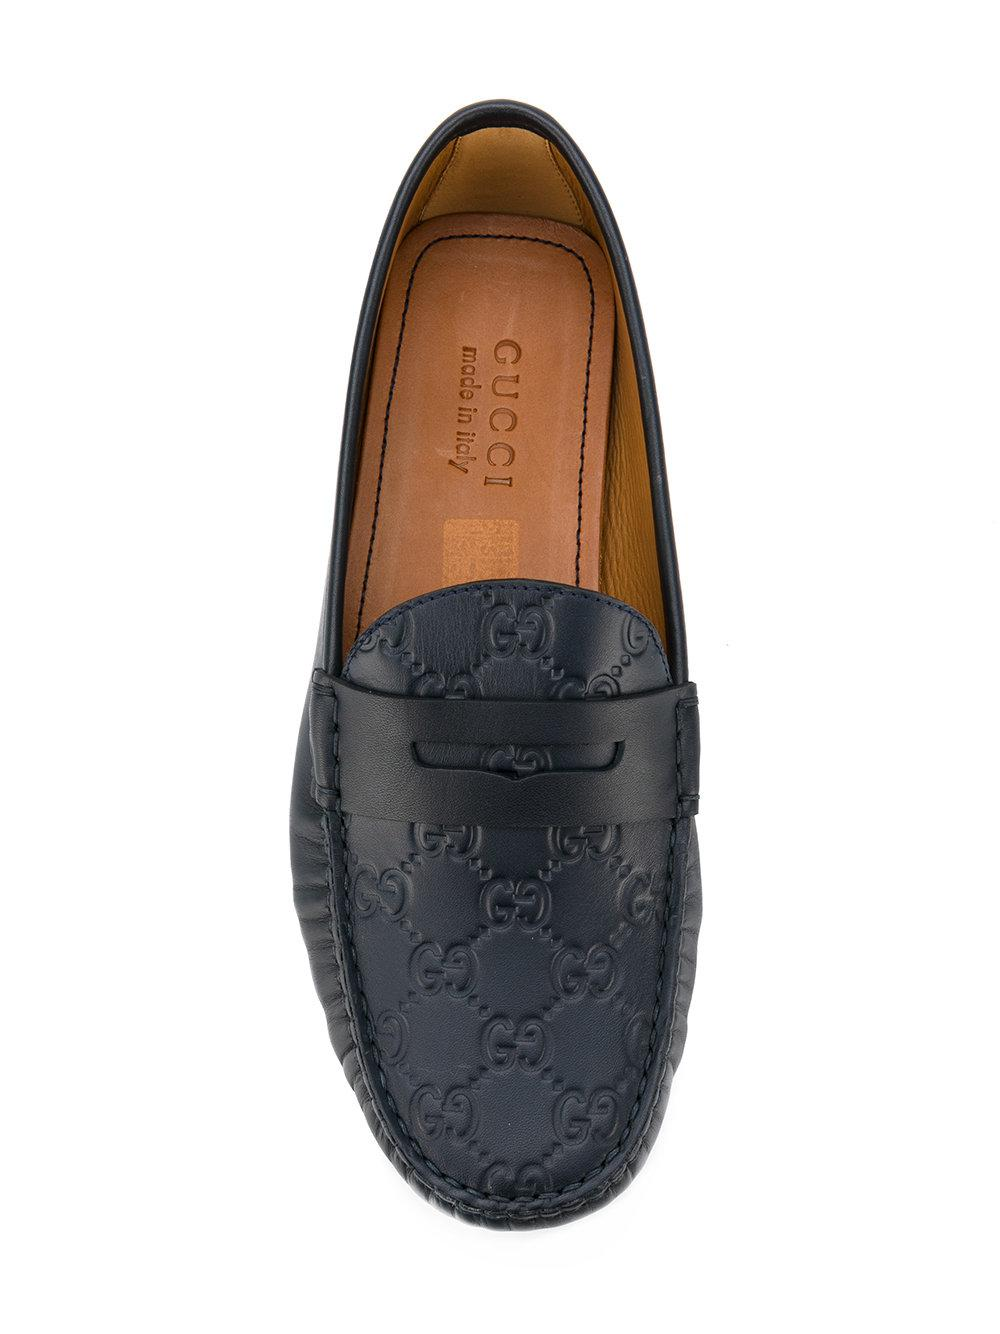 Lyst - Gucci Horsebit Rubber Driving Shoes in Black for Men